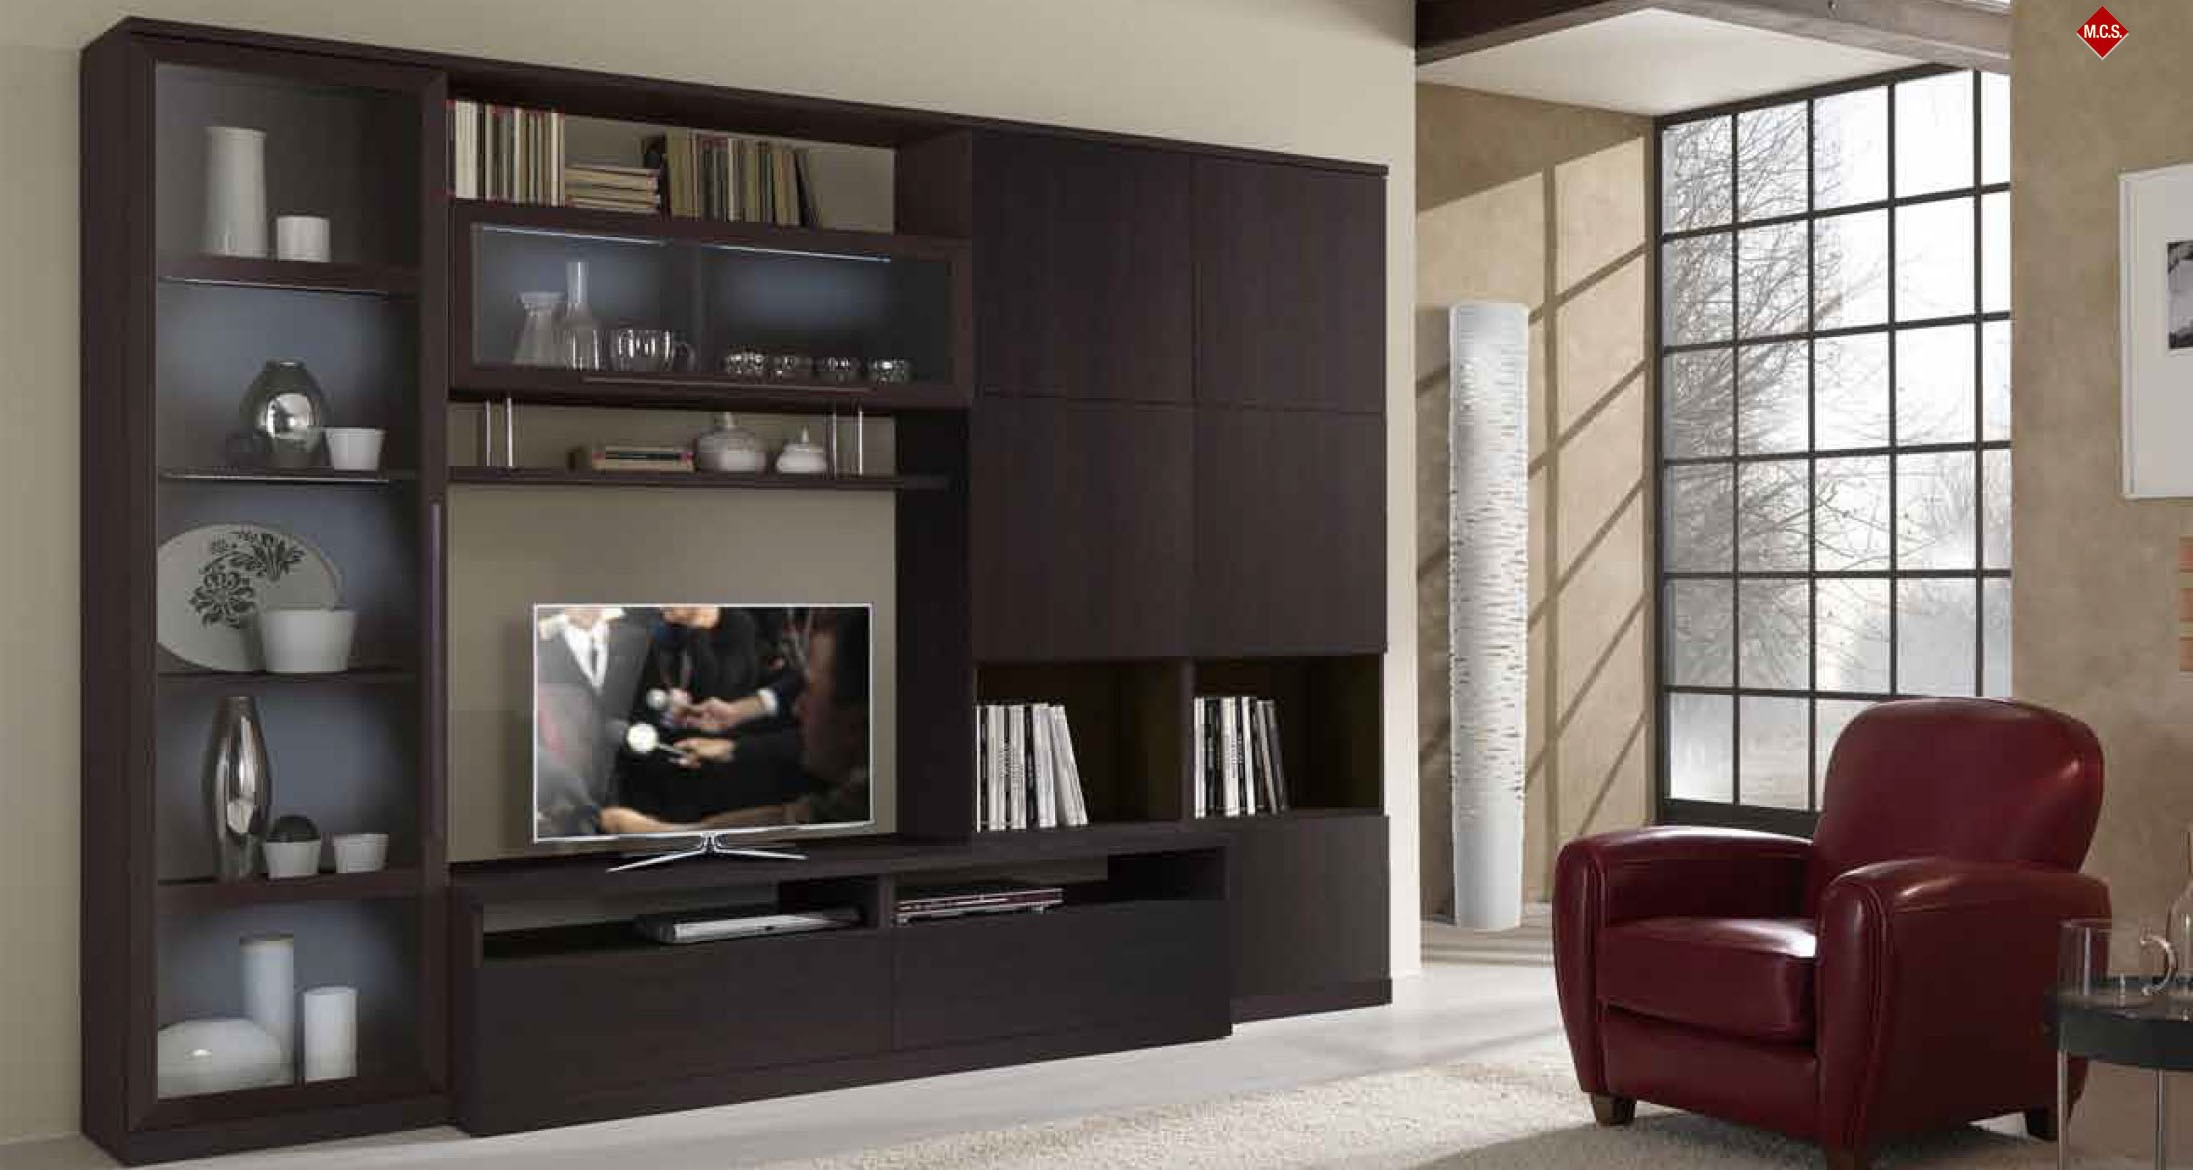 Living Room Furniture Tv 20 modern tv unit design ideas for bedroom & living room with pictures